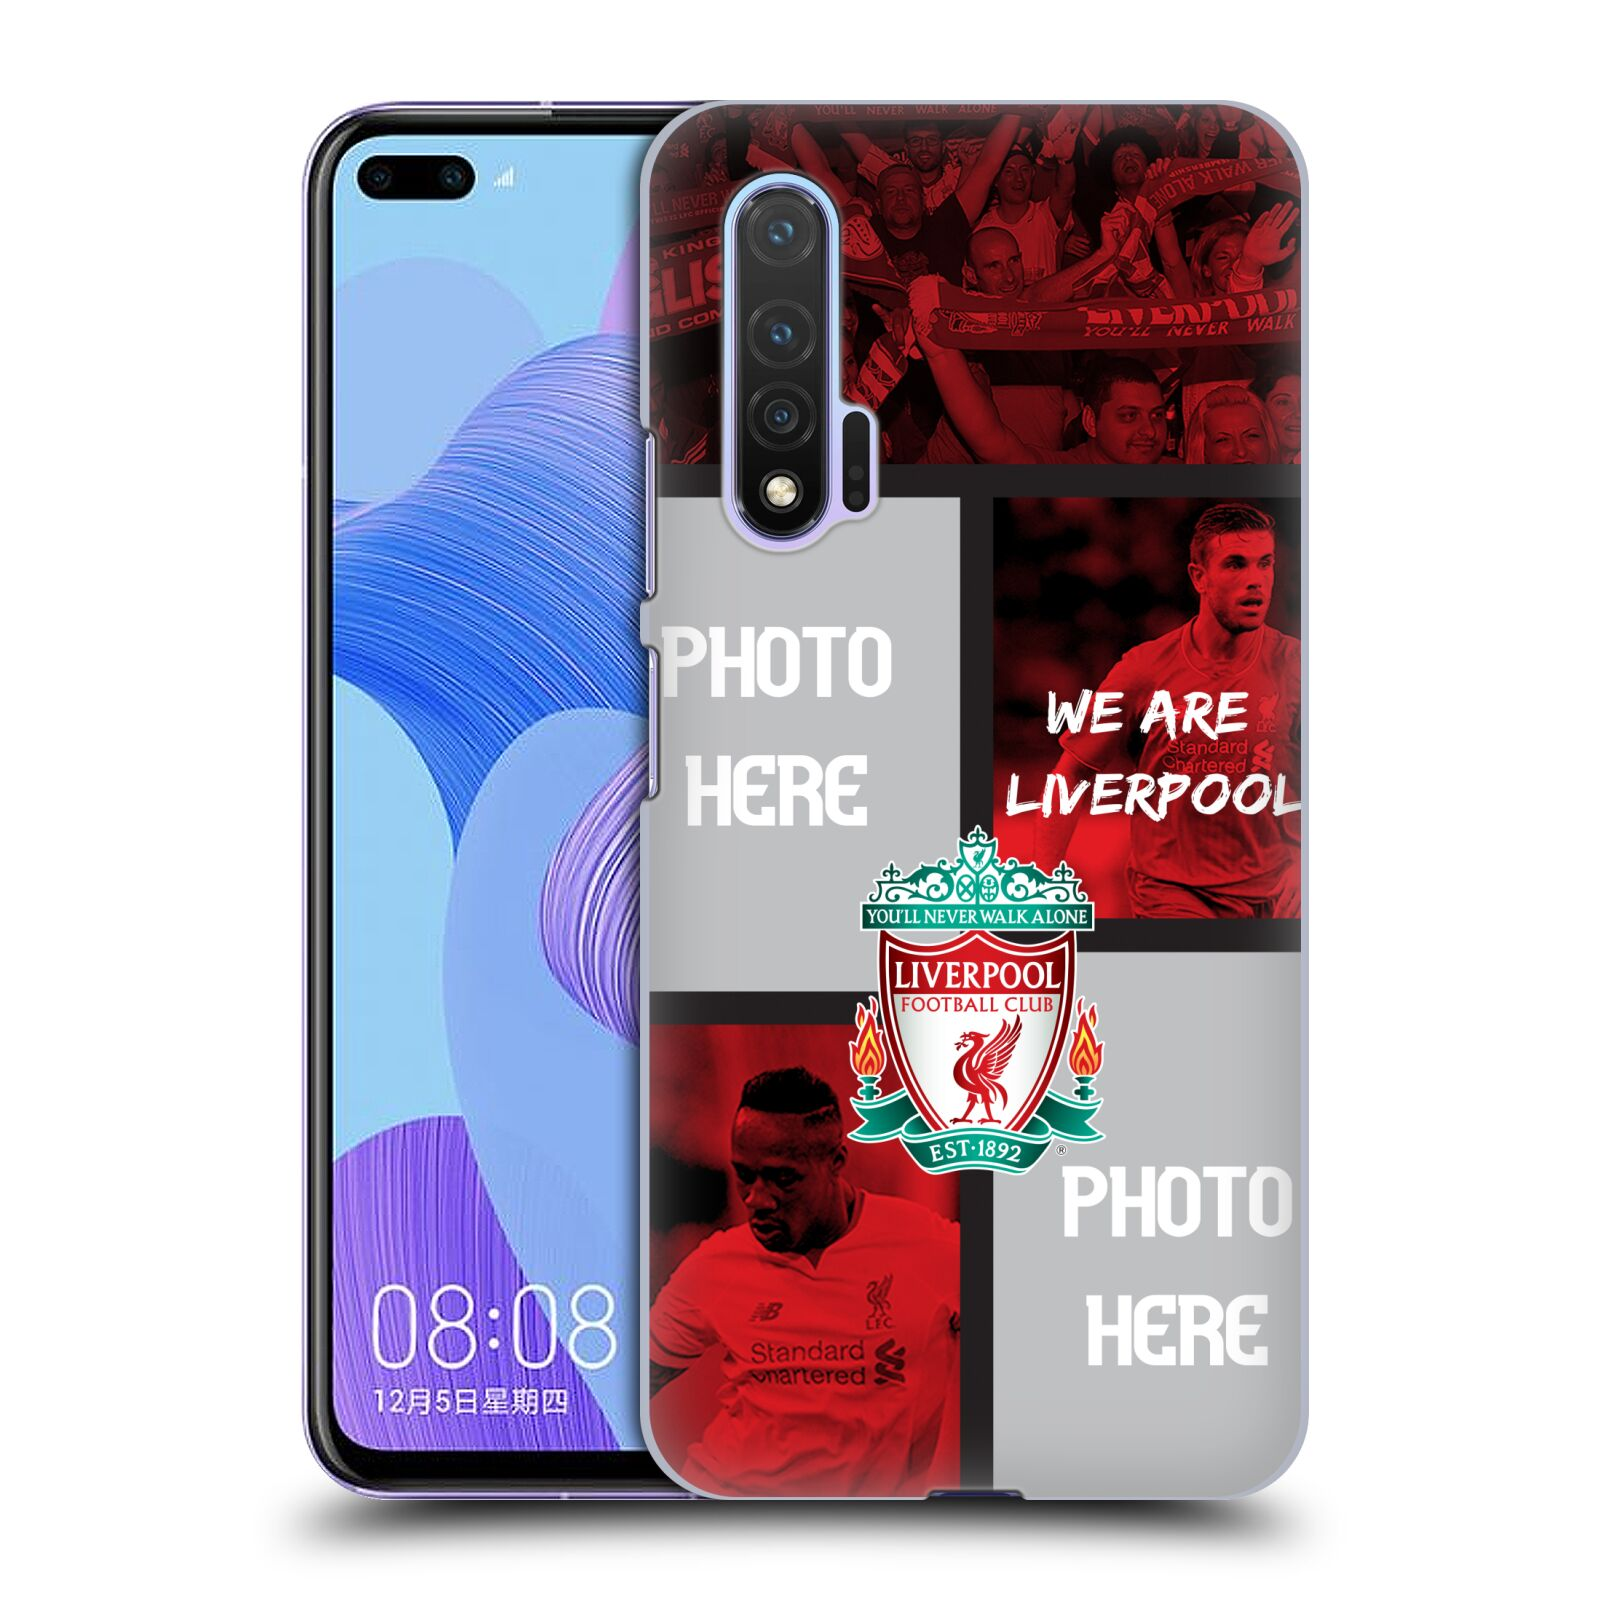 Custom Customised Personalised Liverpool Football Club Liverpool Fc We Are Liverpool Case for Huawei Nova 6 5G